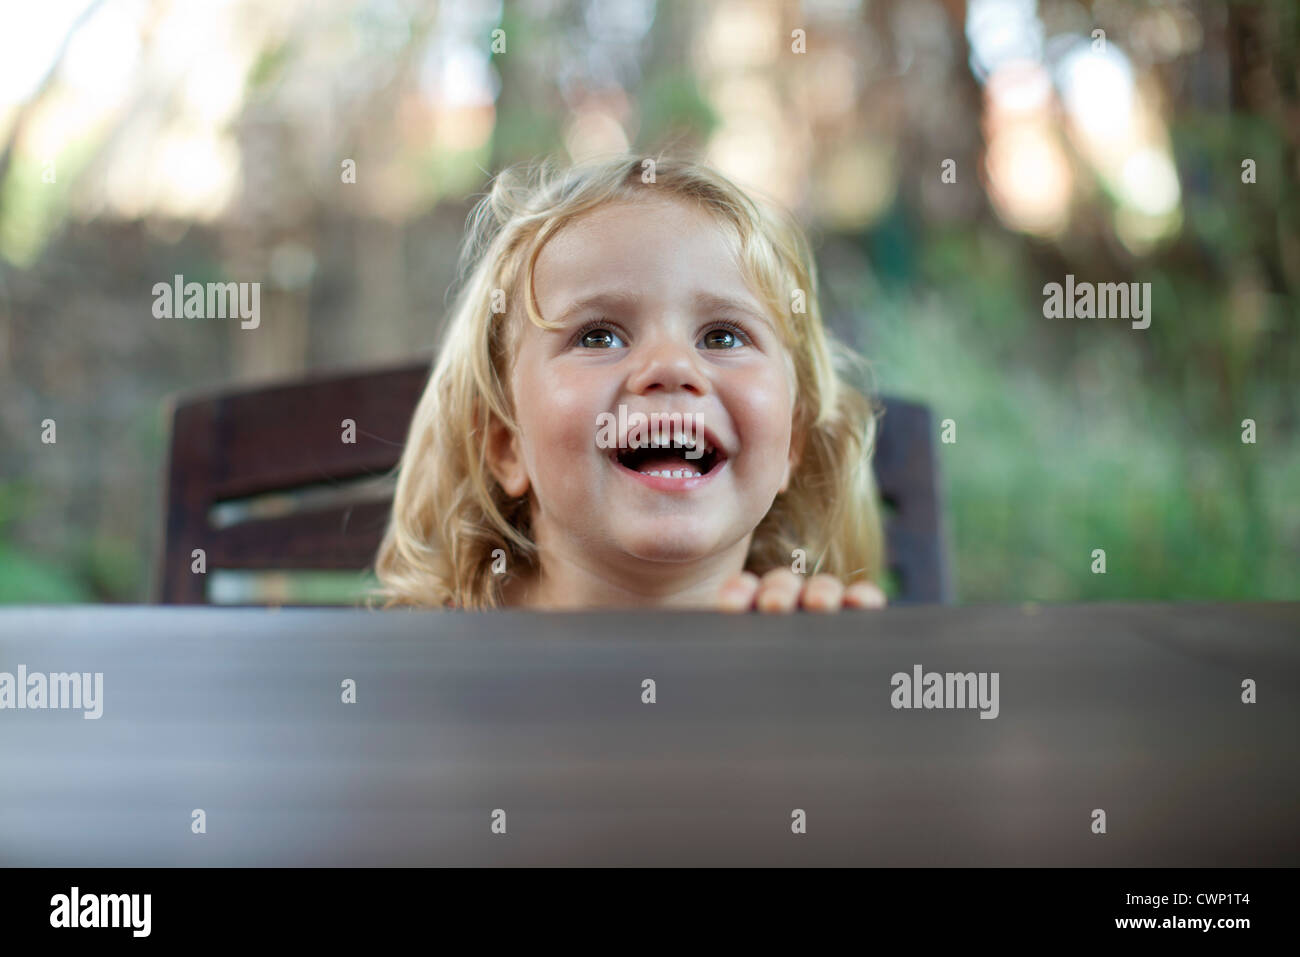 Little girl laughing - Stock Image